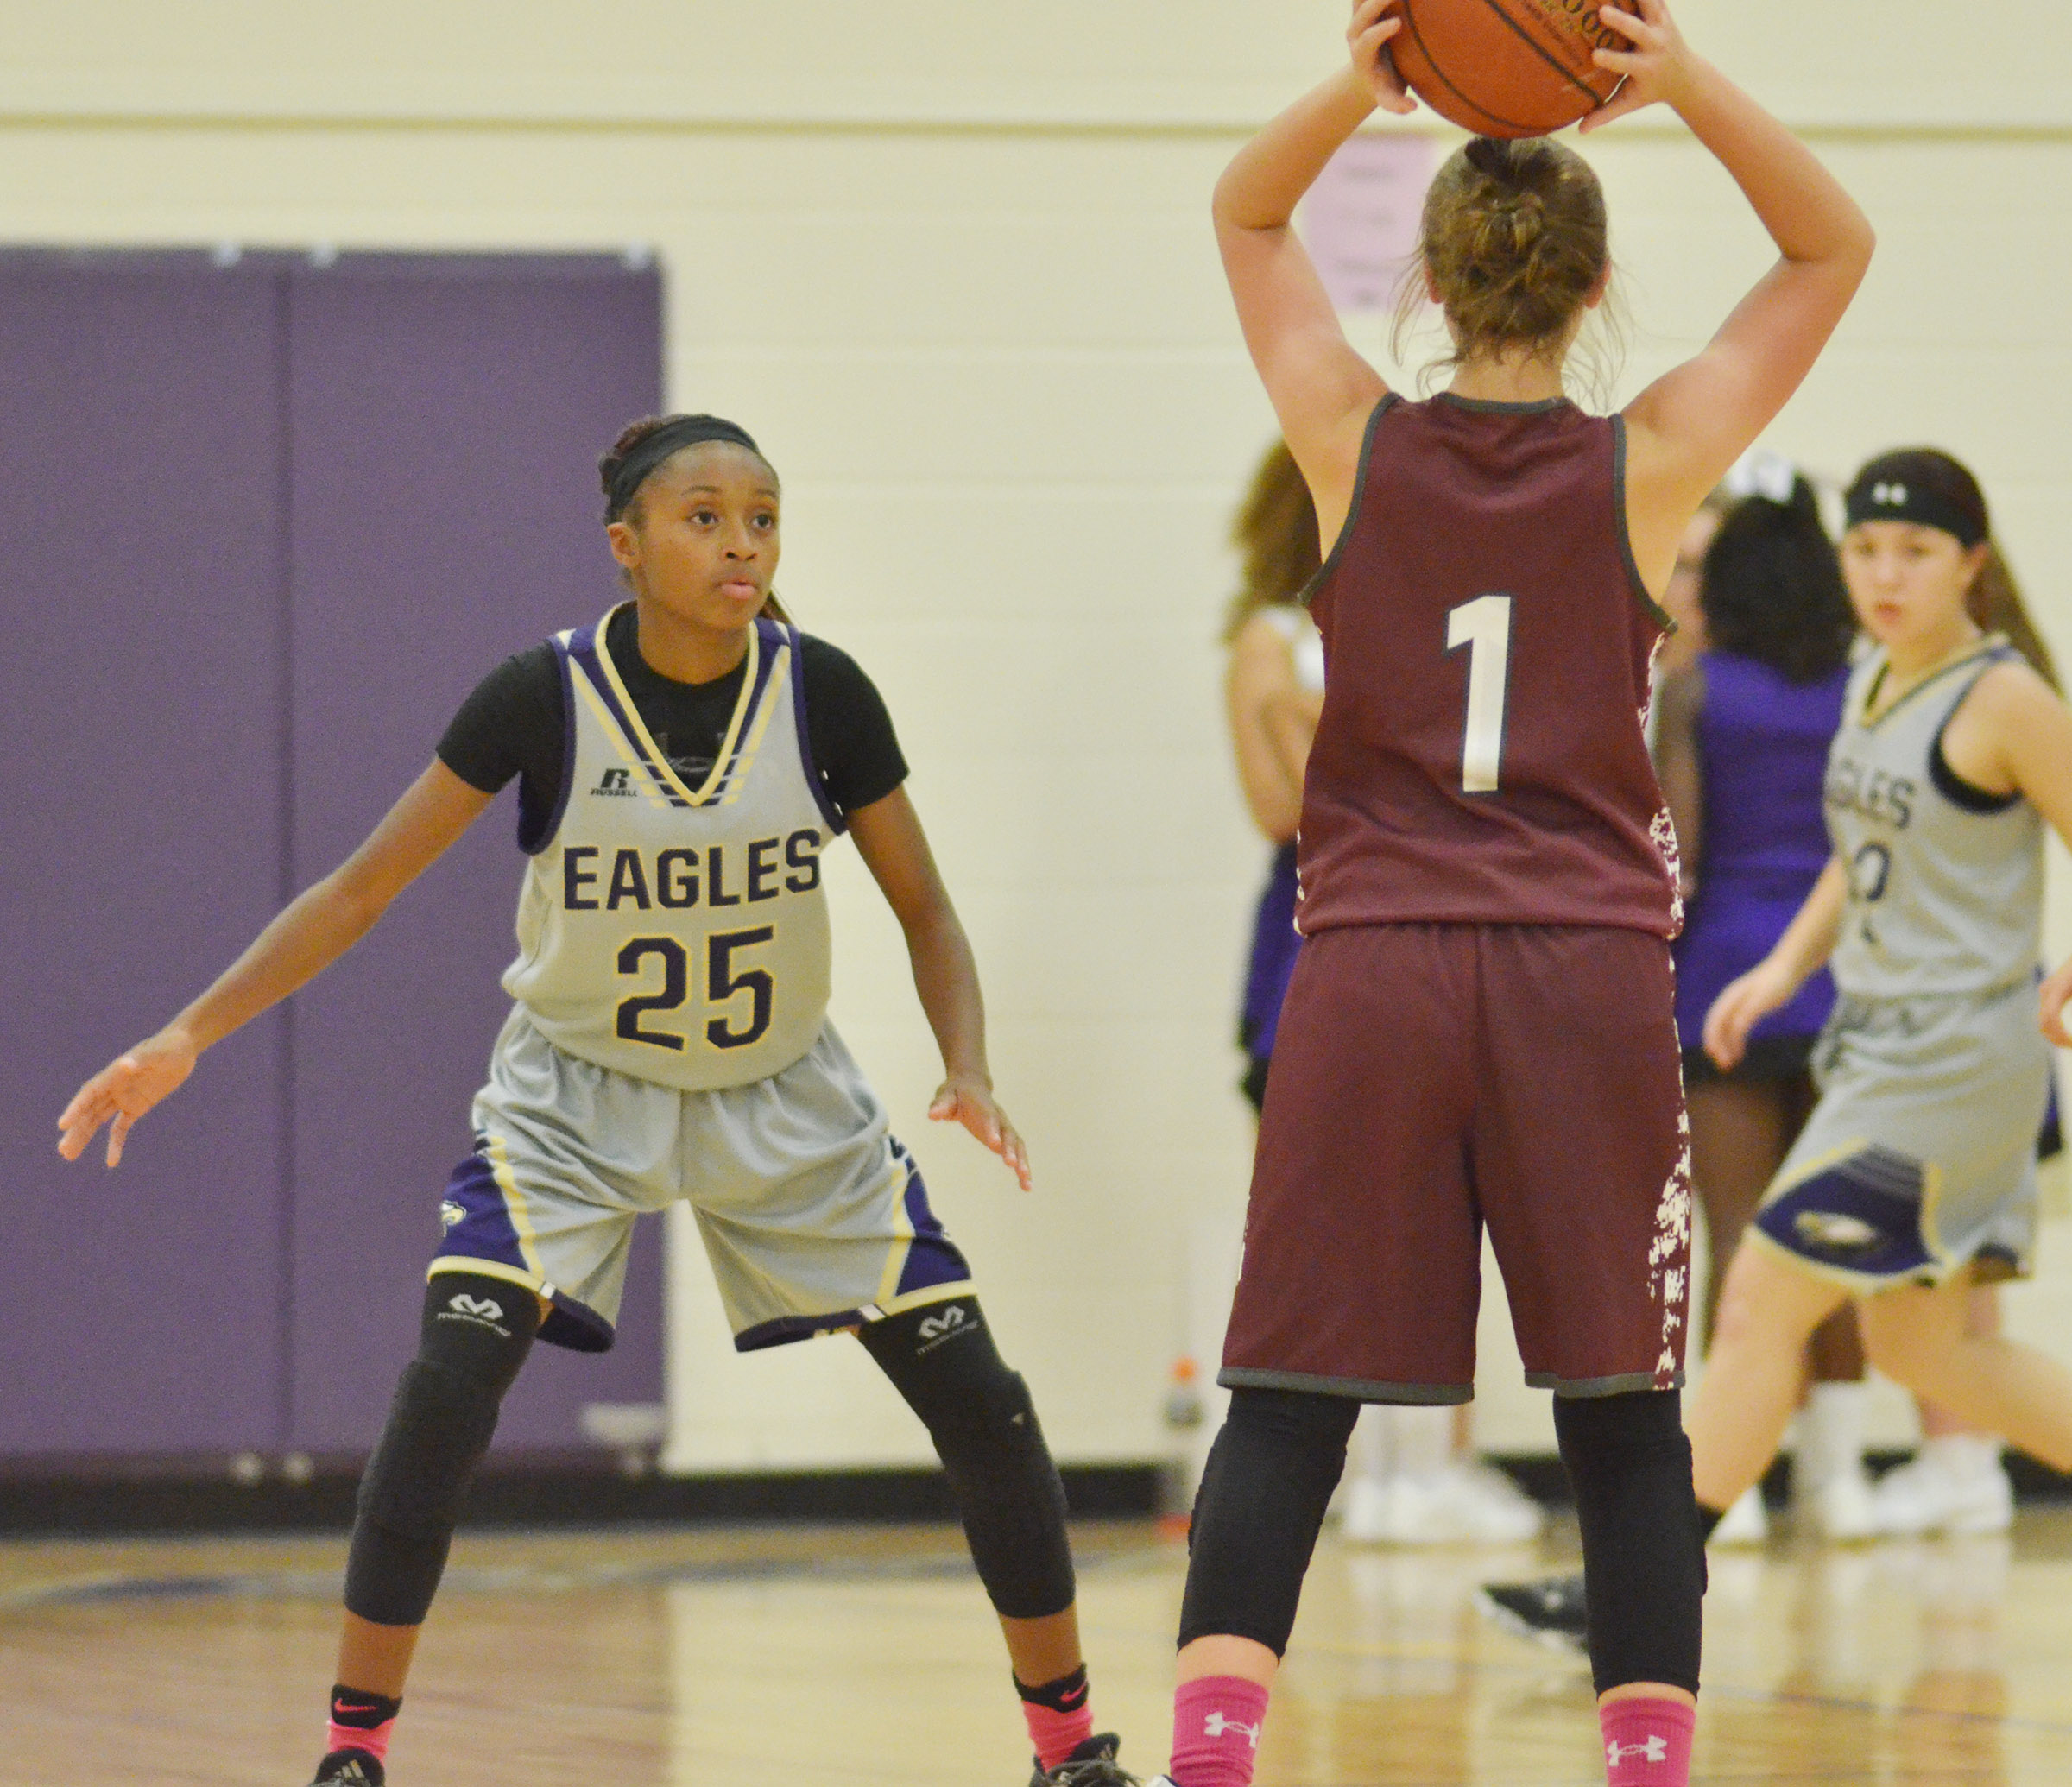 CMS eighth-grader Bri Gowdy watches the ball.